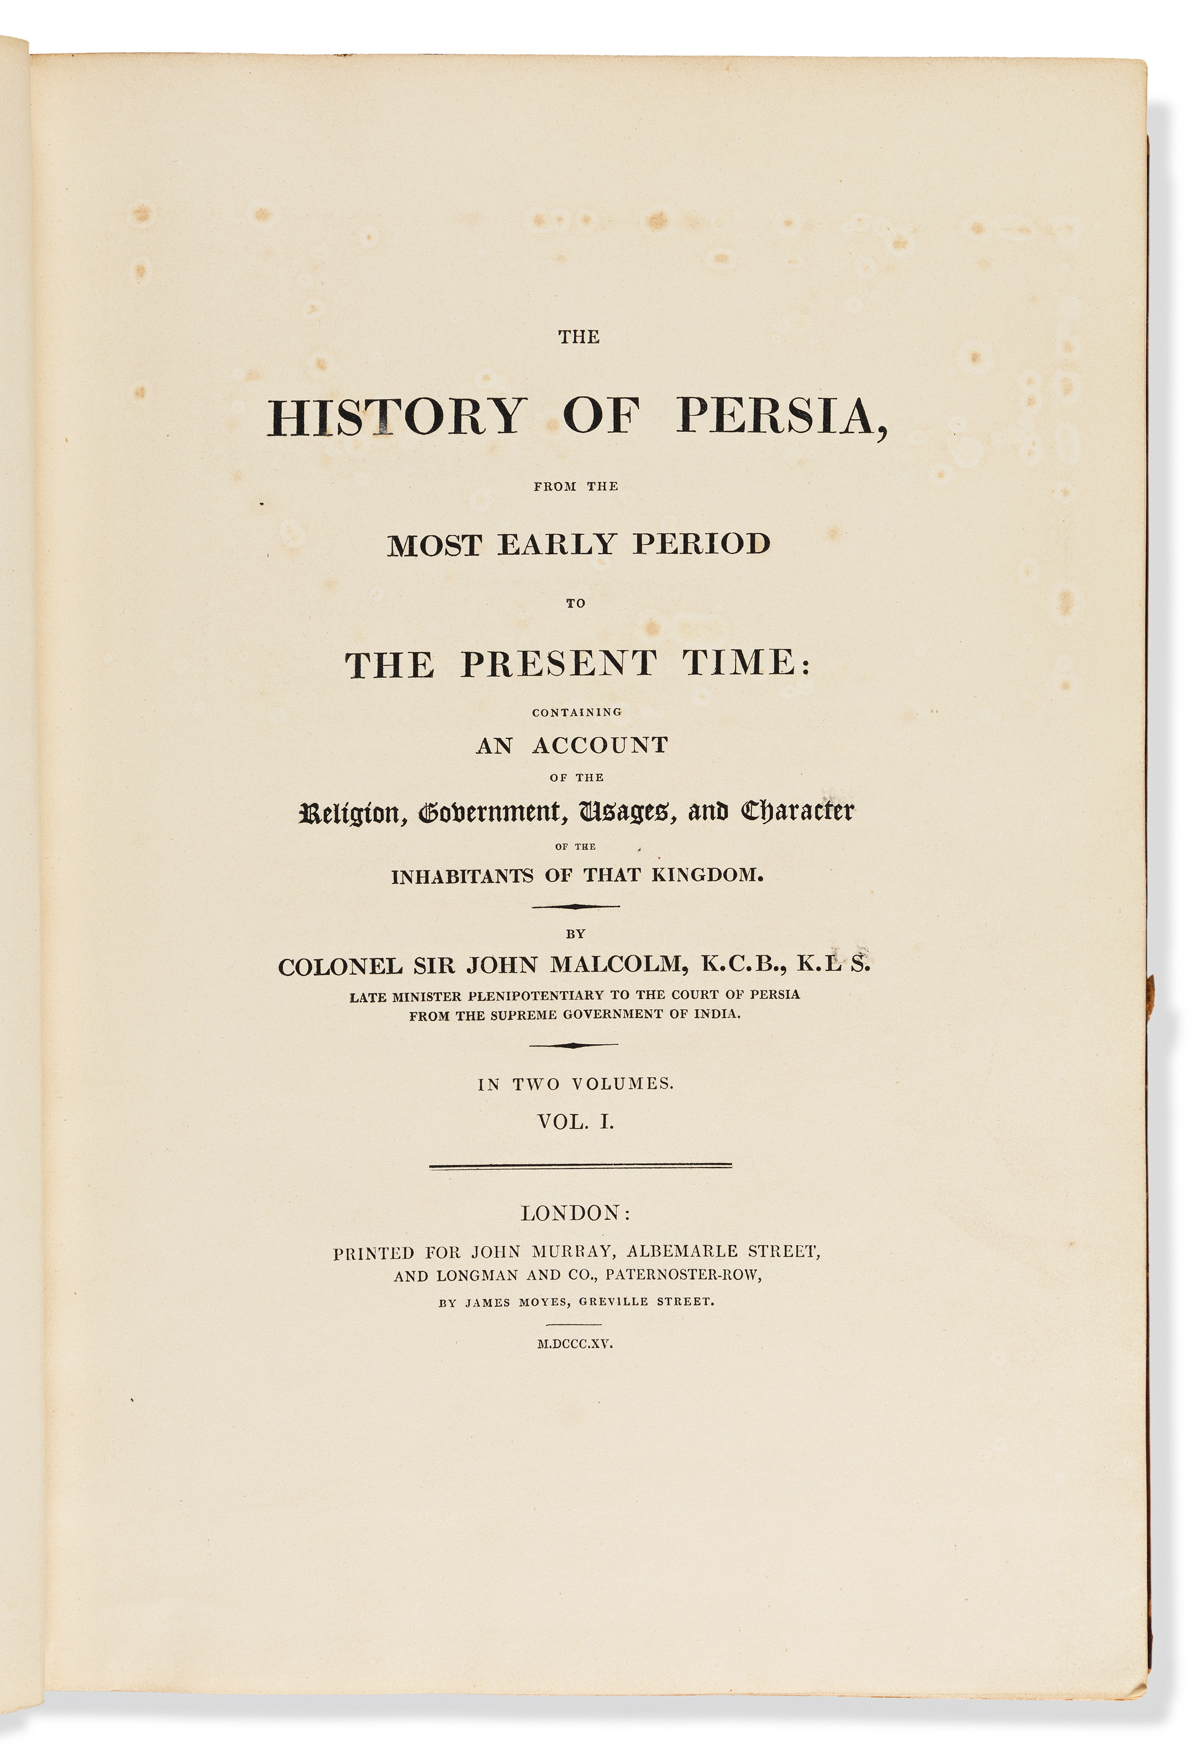 Malcolm, Sir John (1769-1833) The History of Persia, from the Most Early Period to the Present Time.